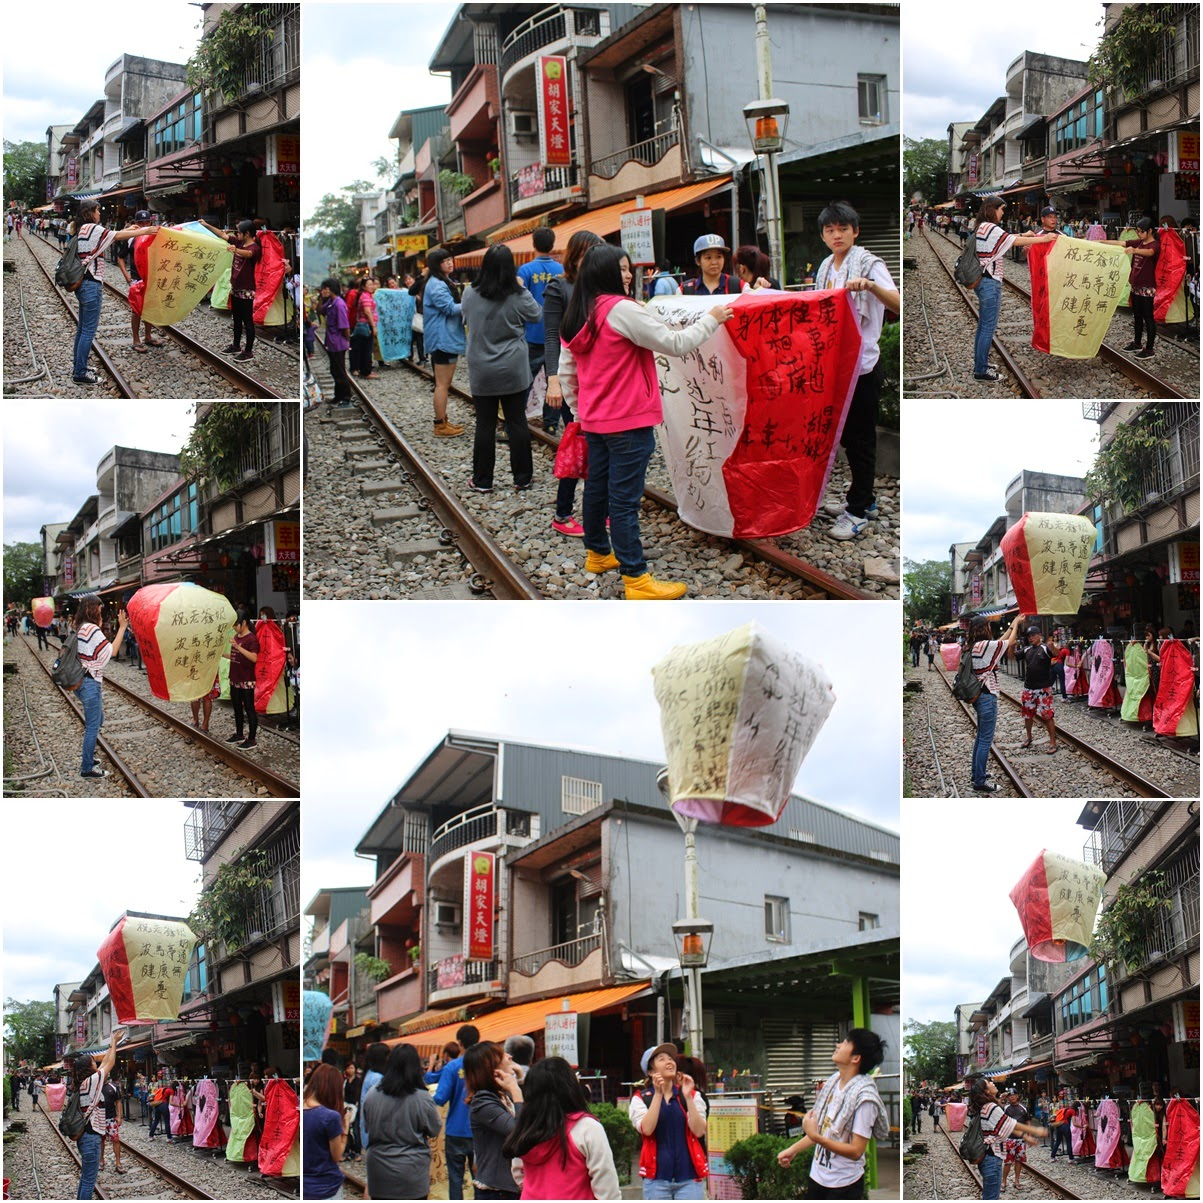 Releasing sky lanterns with your messages at Shifen Old Village in Taiwan